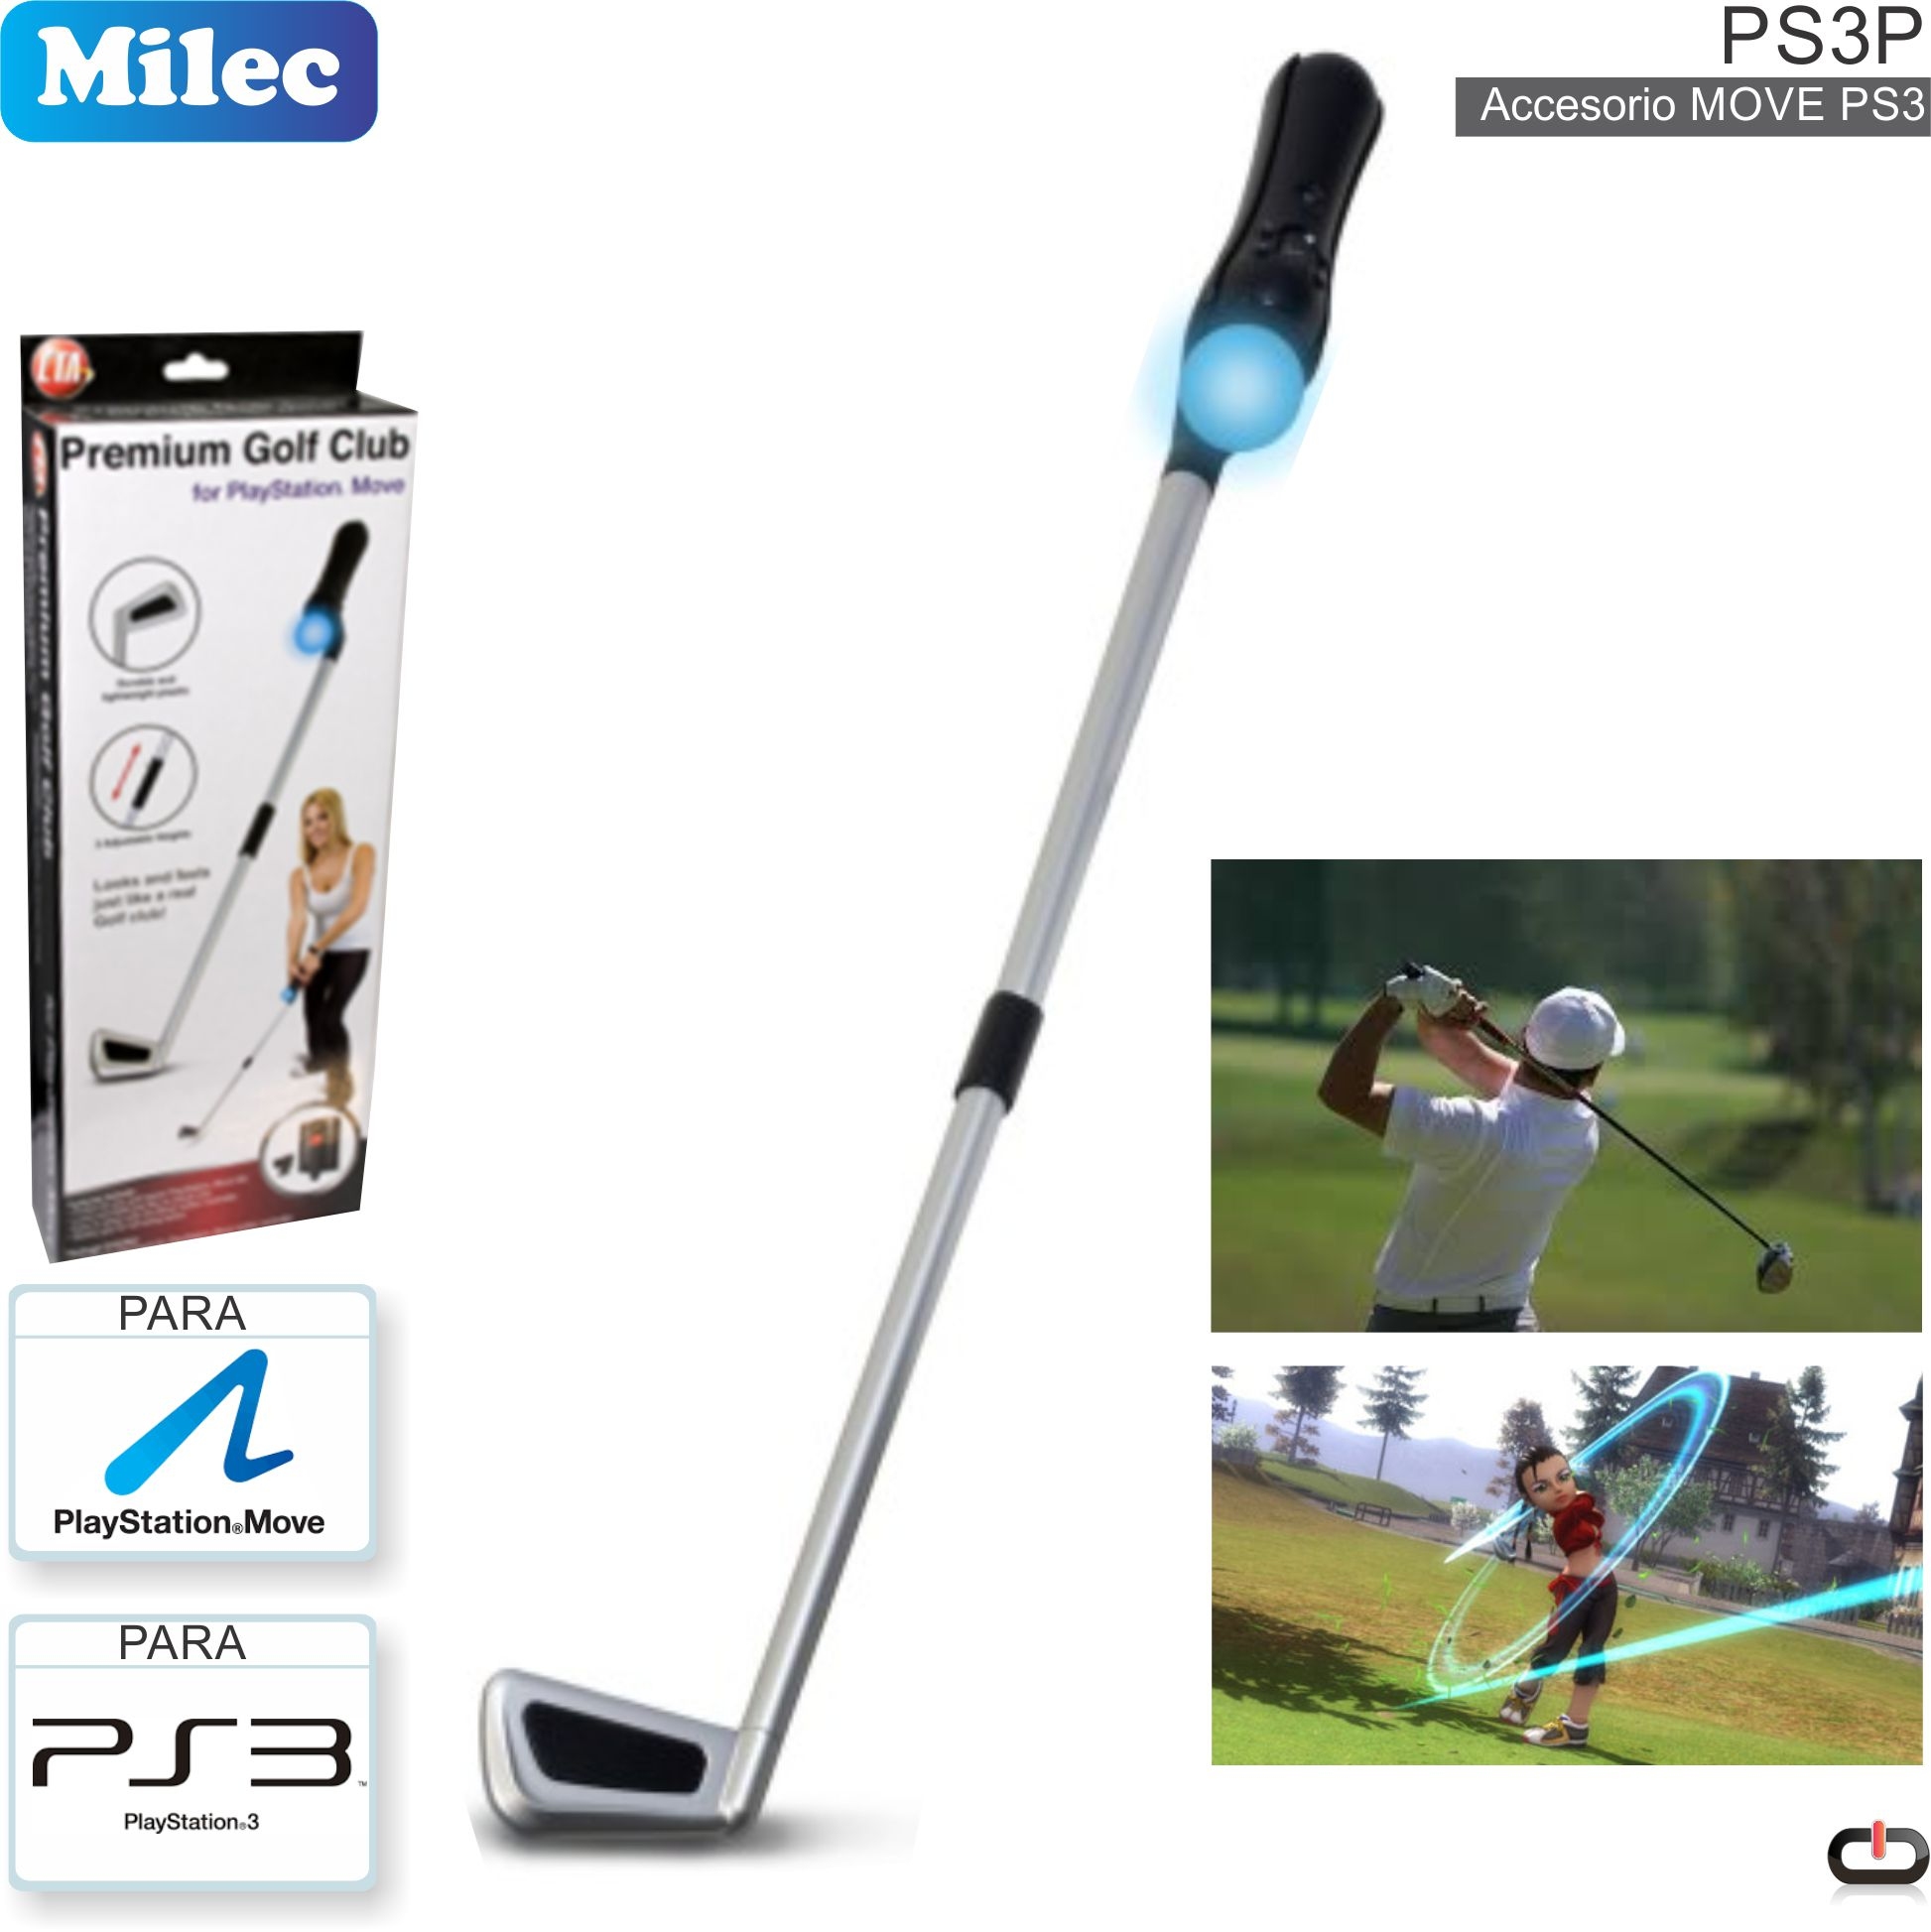 PS3 Accesorio Move Palo de Golf MILEC PS3P